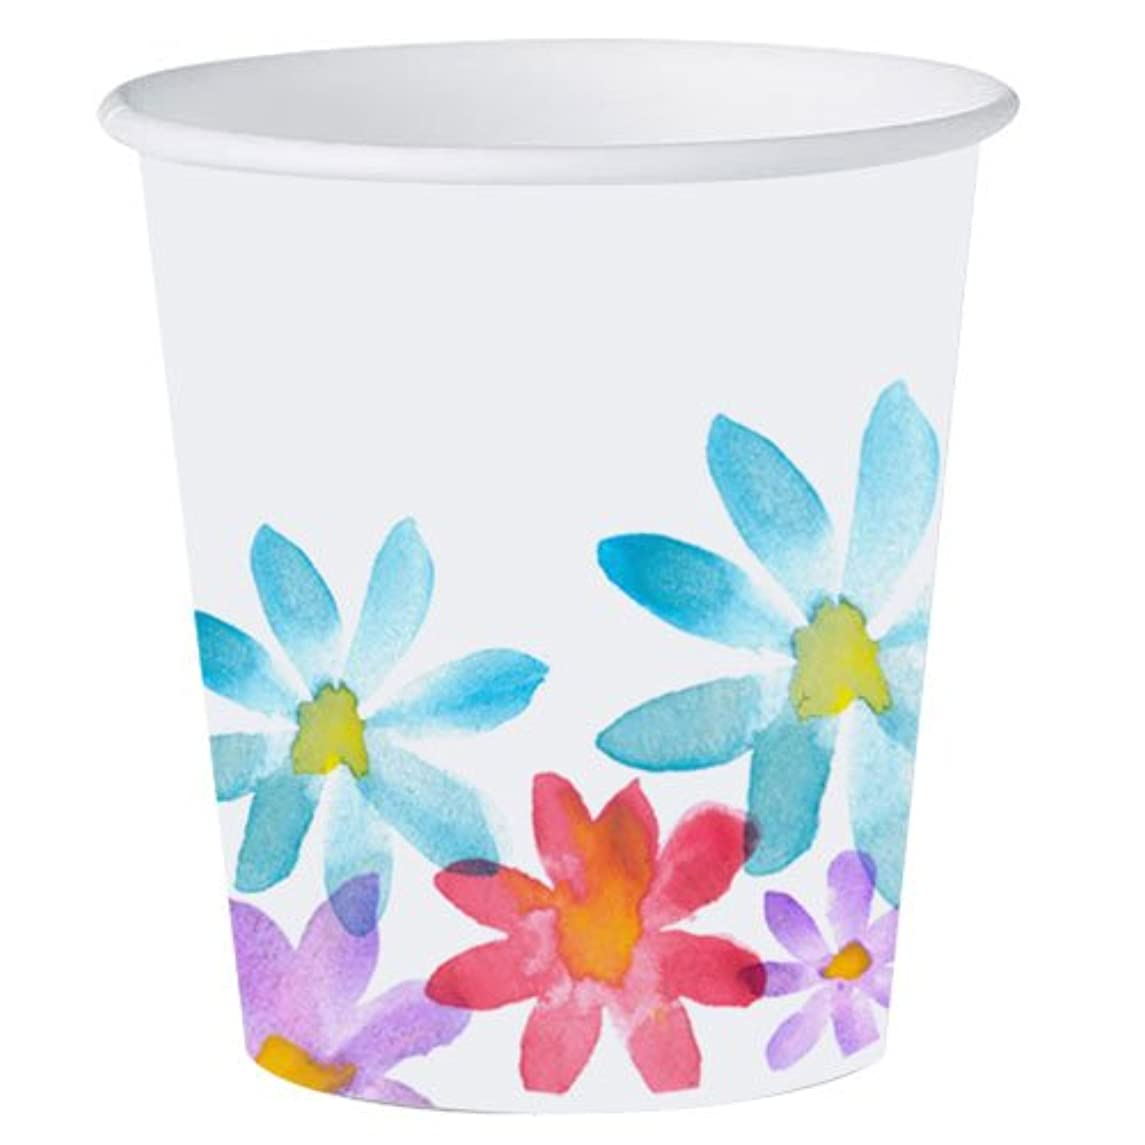 Nicole Home Collection Paper Dispenser Cups, 3-Ounce, 100-Count